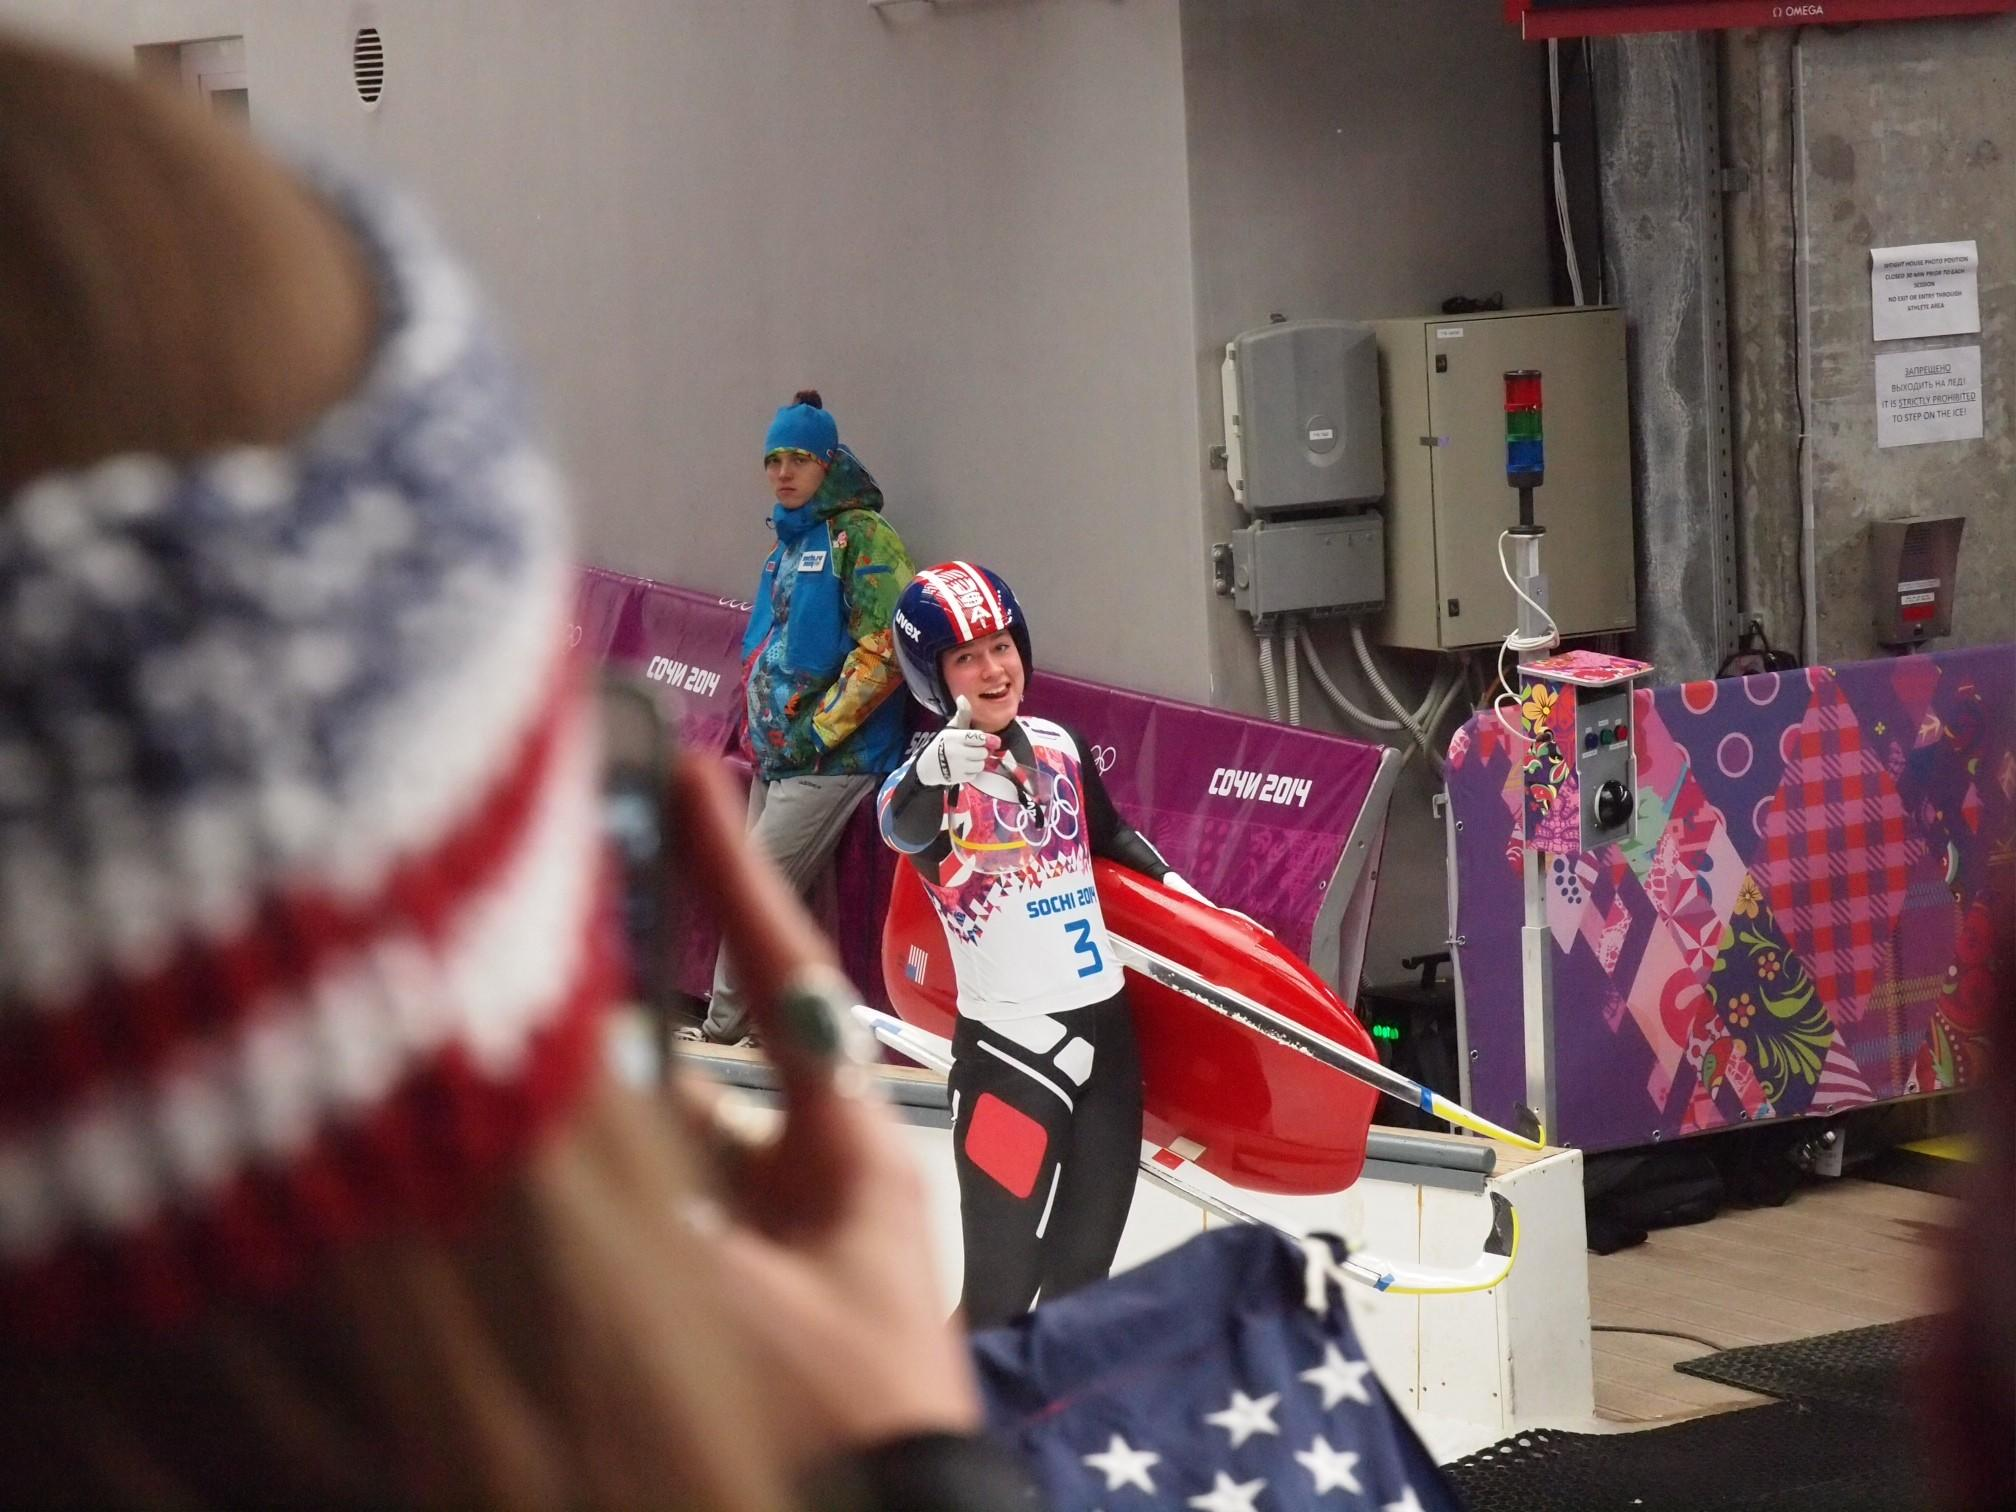 A view of Kate Hansen as she walks off the tracks in Sochi, Russia during the 2014 Winter Olympics. Hansen, a La Cañada resident, placed 10th in the competition.